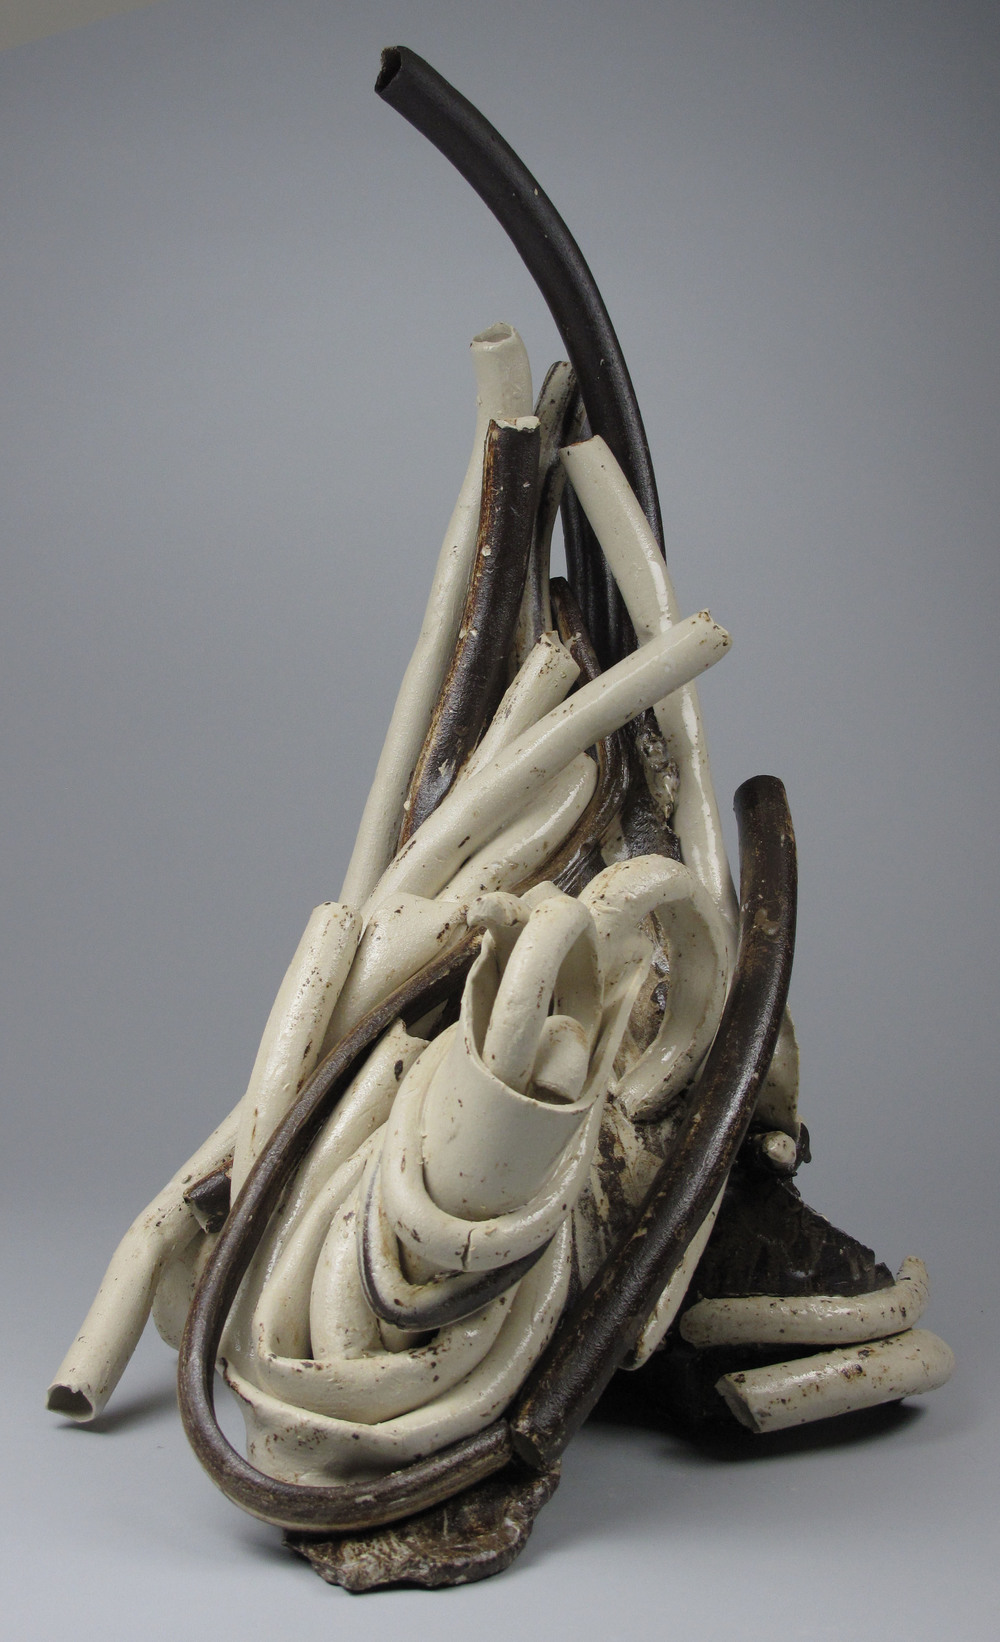 Sara Fine-Wilson ,  Rickety , mixed ceramic, 14x12x18